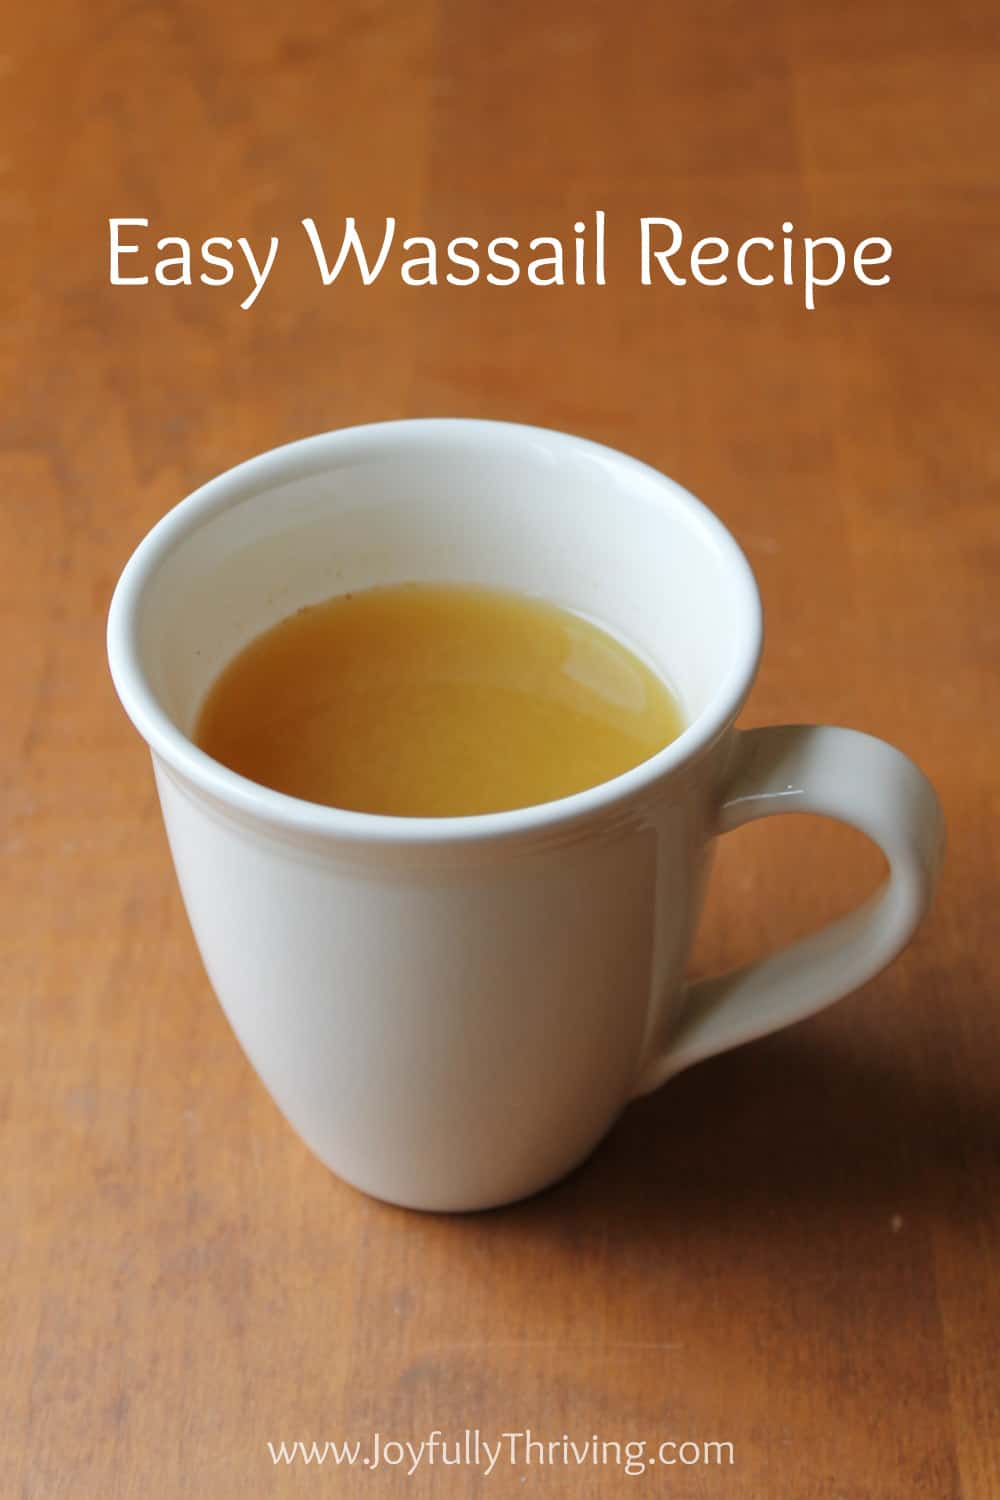 Easy Wassail Recipe - I love homemade wassail! And this recipe is so simple and absolutely delicious. A great winter drink!